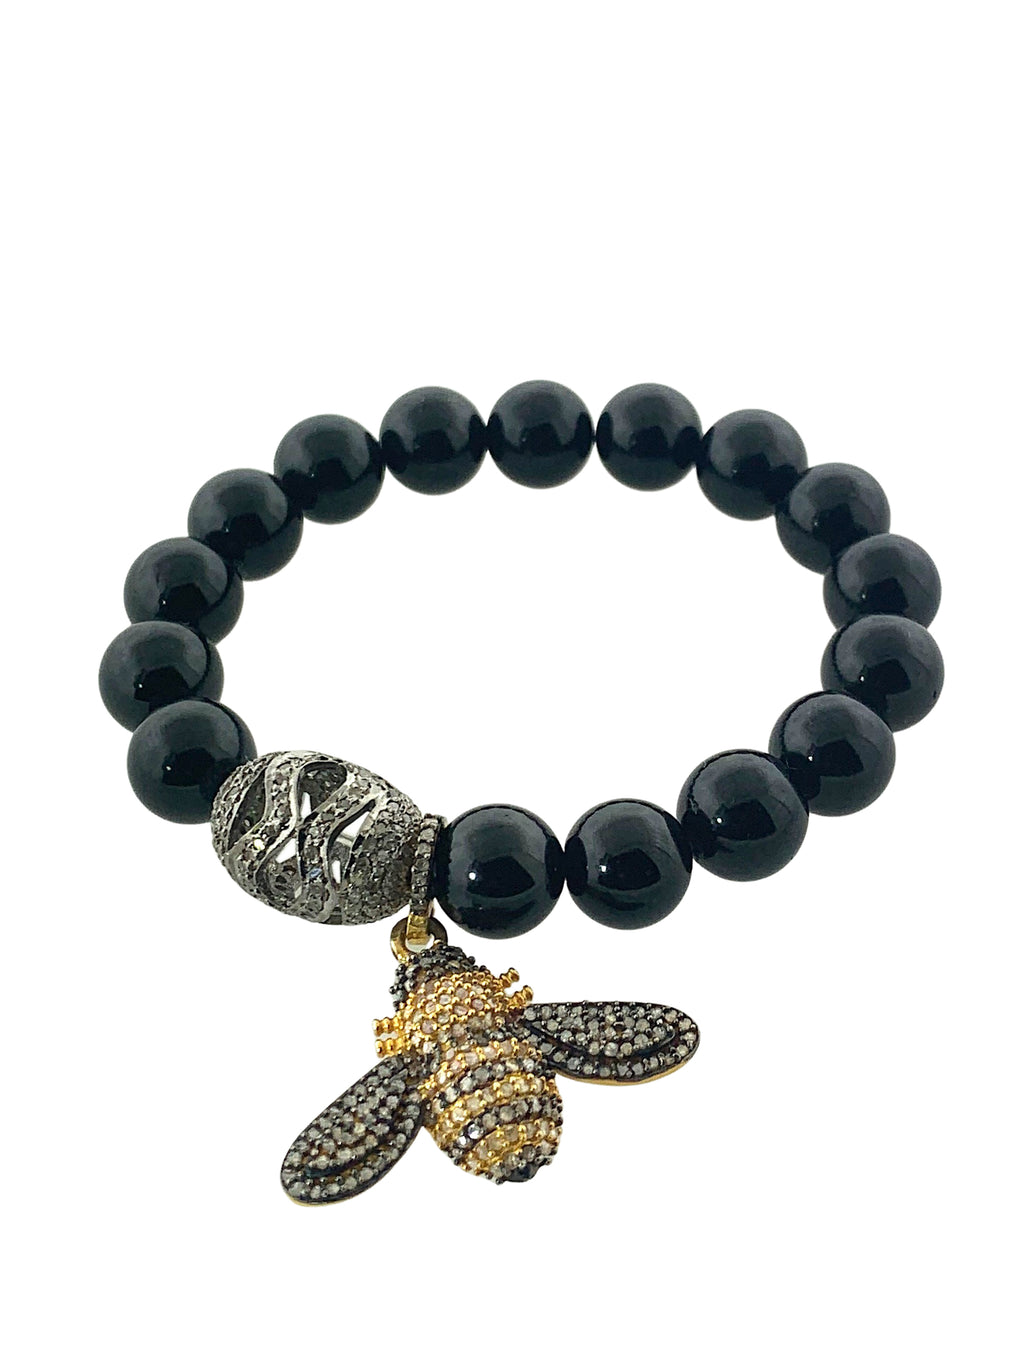 Black Tourmaline with a Pave Diamond Bead and Bee